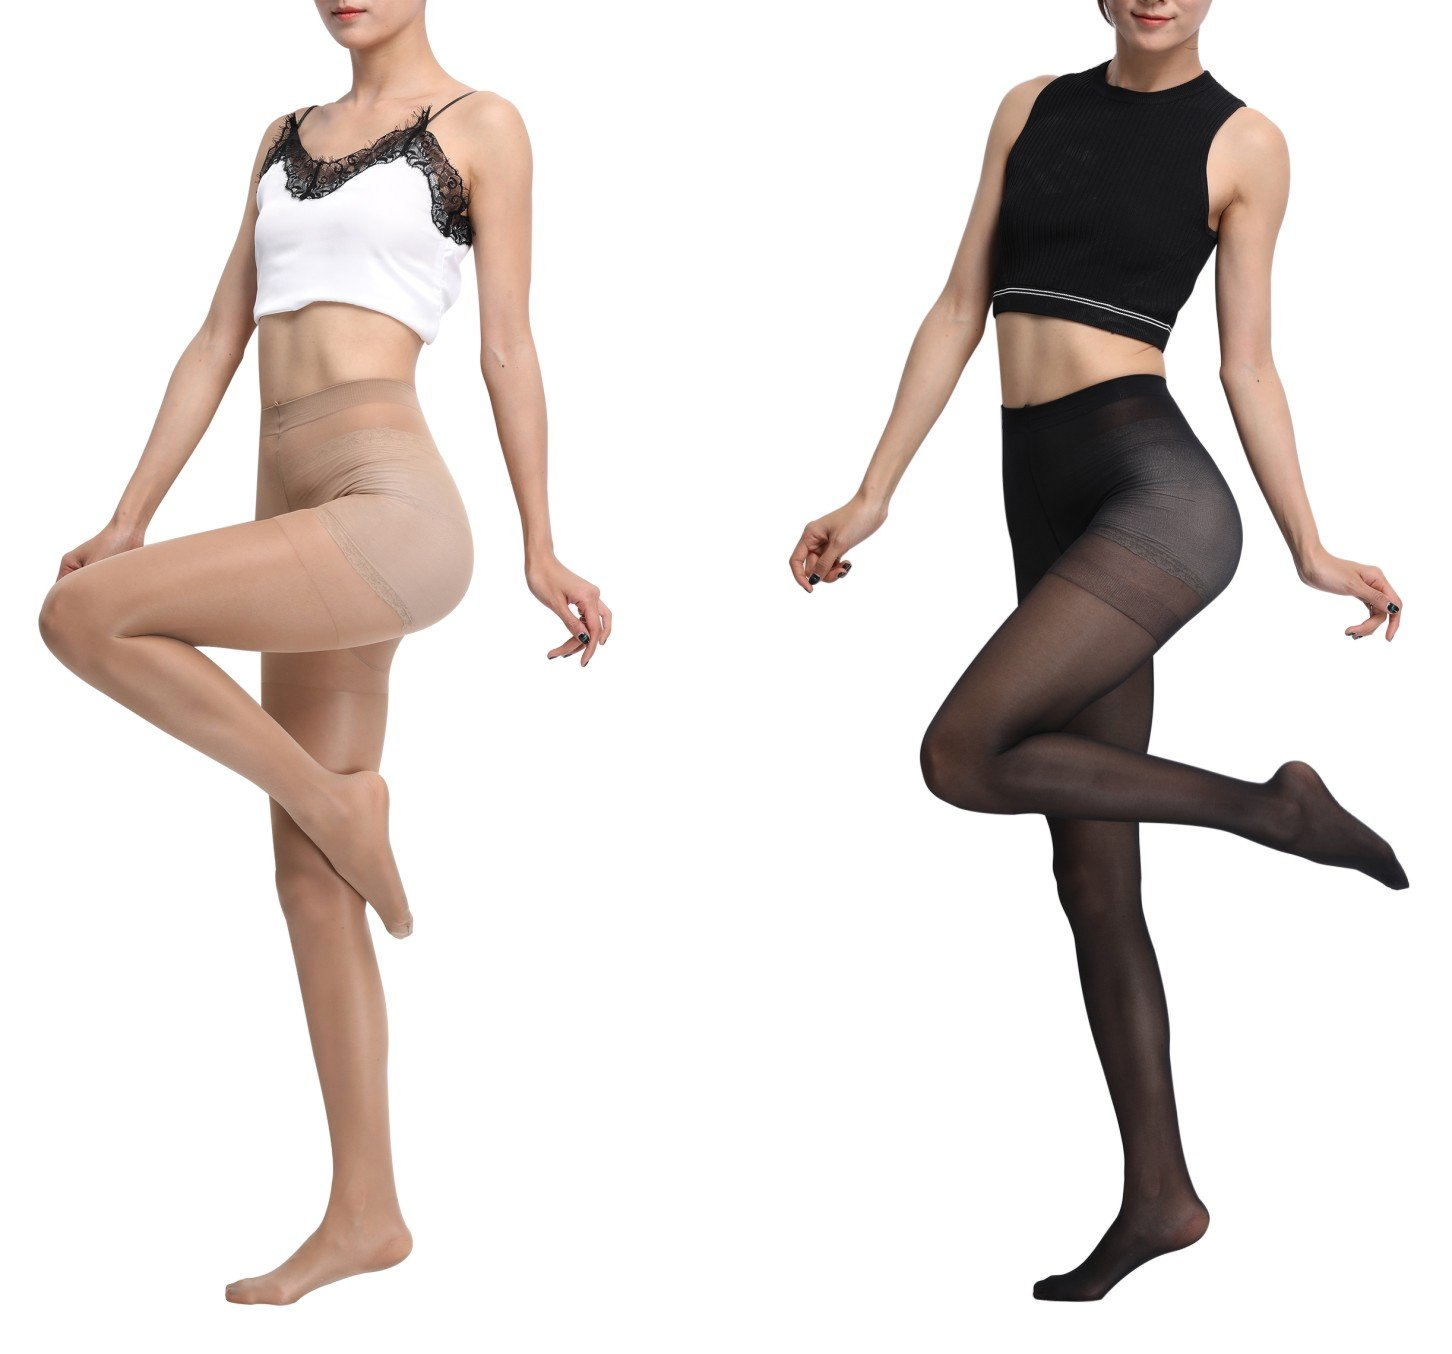 Aphro Women's Control Top Tights Semi-Opaque Black Pantyhose footed Leggings 2 pairs